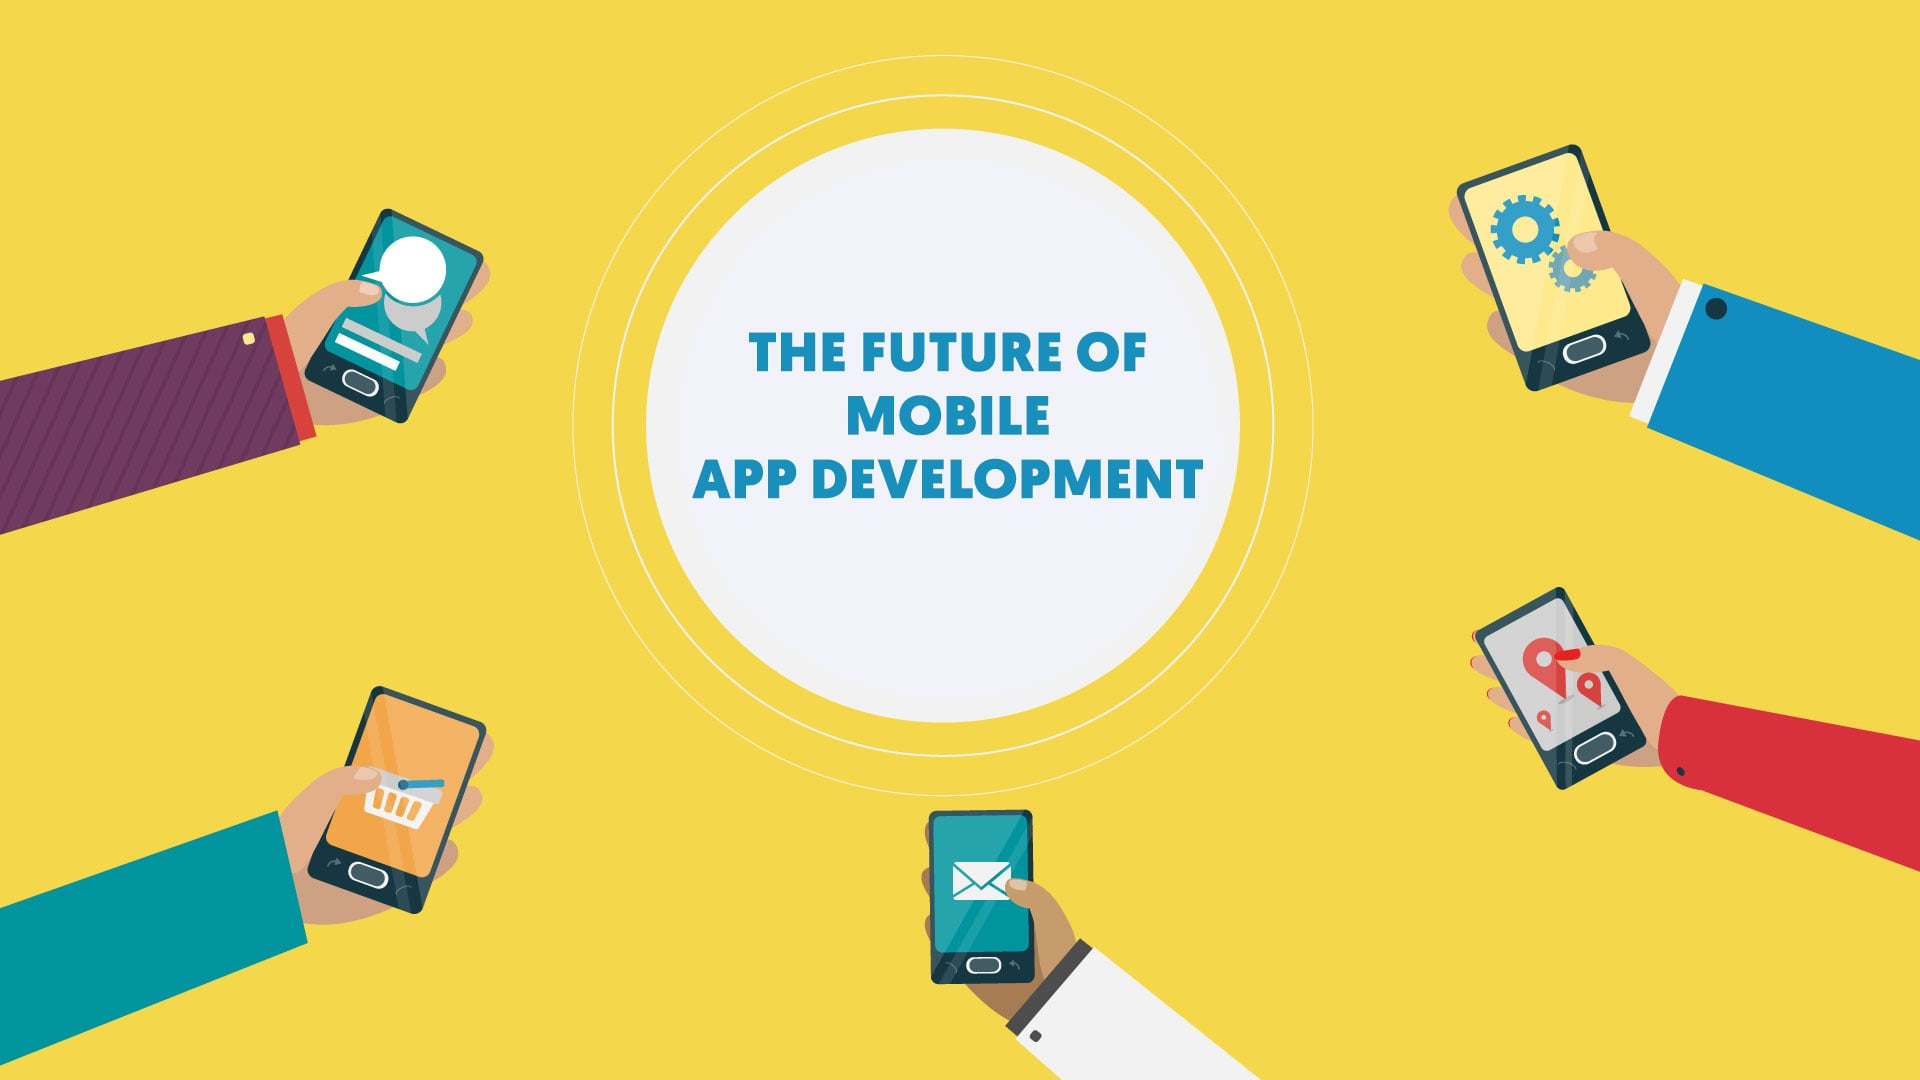 future of mobile apps image